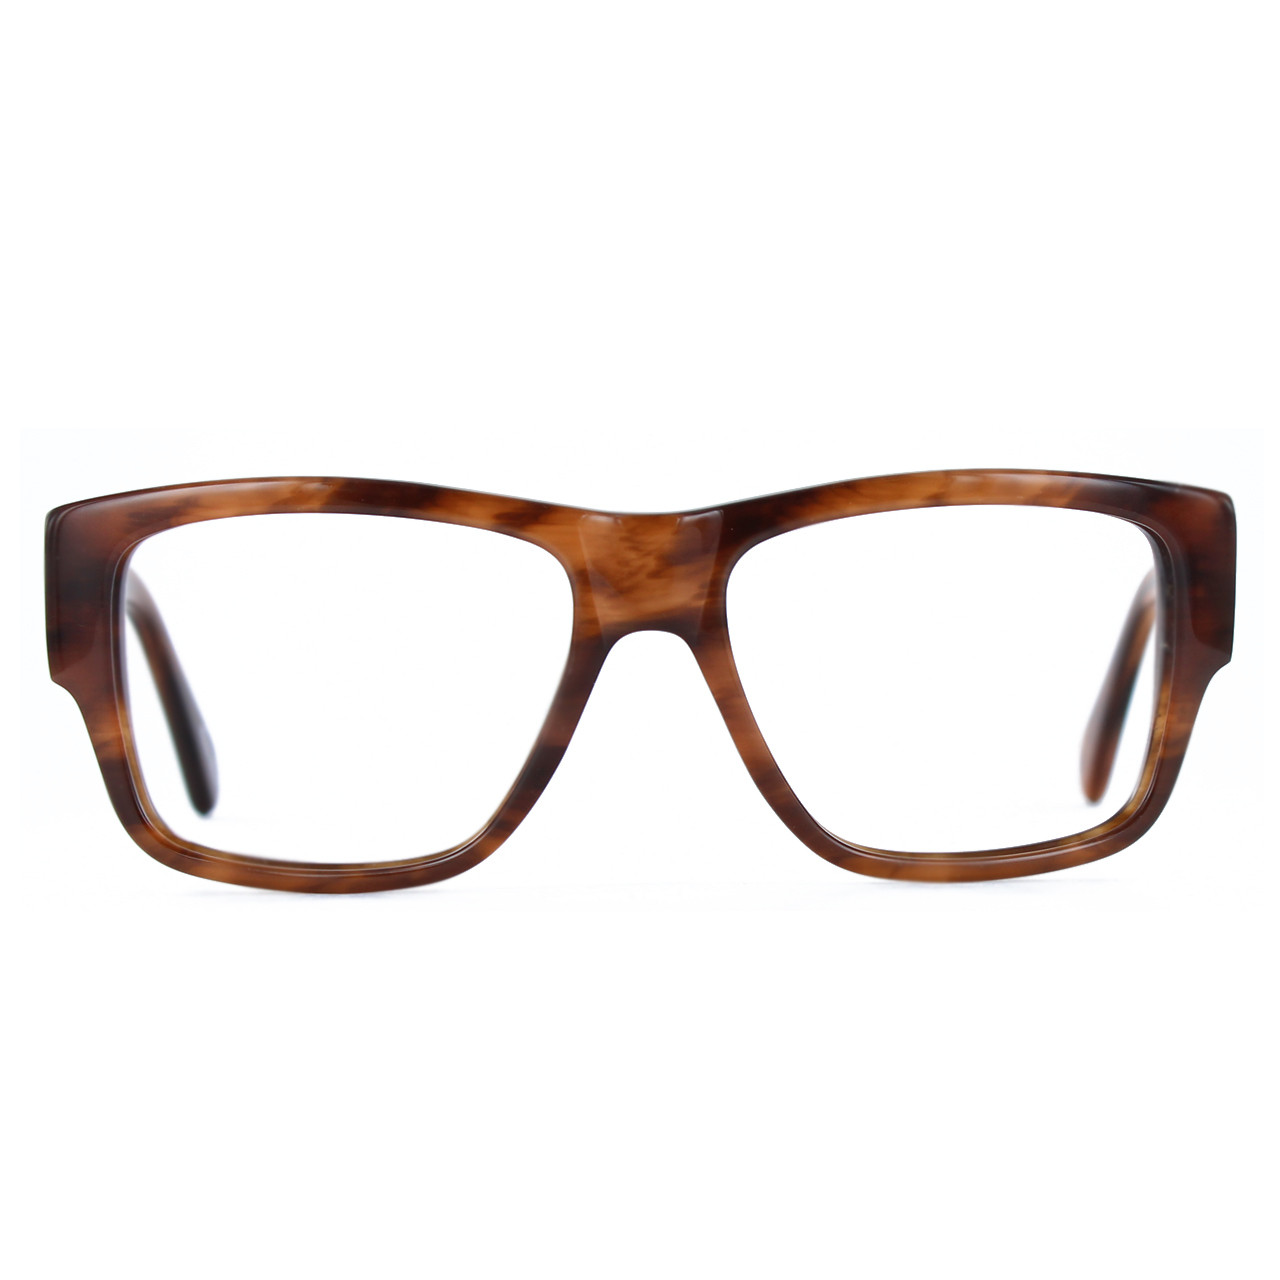 color: Brown (Tortoise)